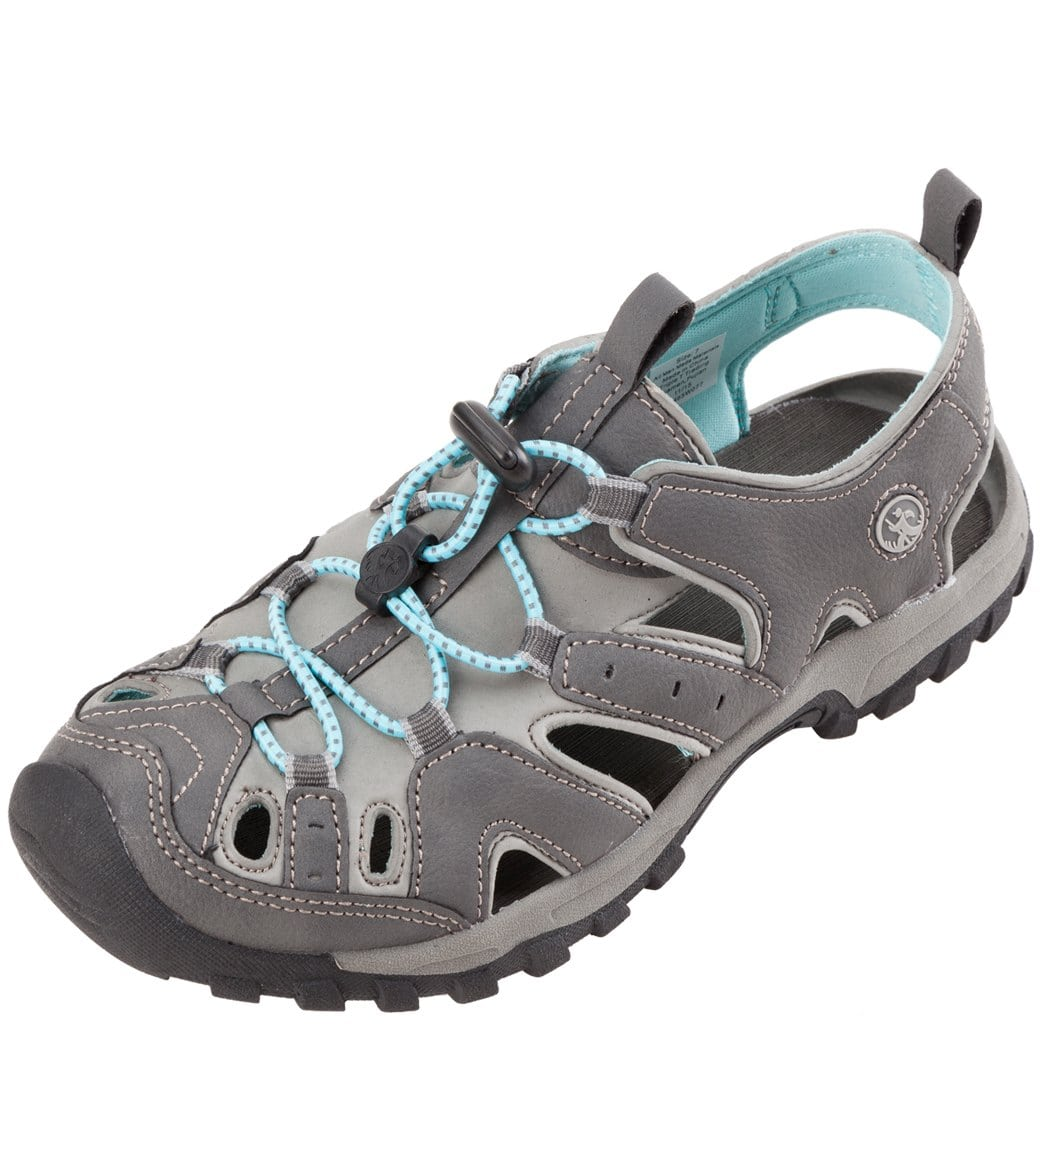 b6bedd6517a3e8 Women s Water Shoes at SwimOutlet.com